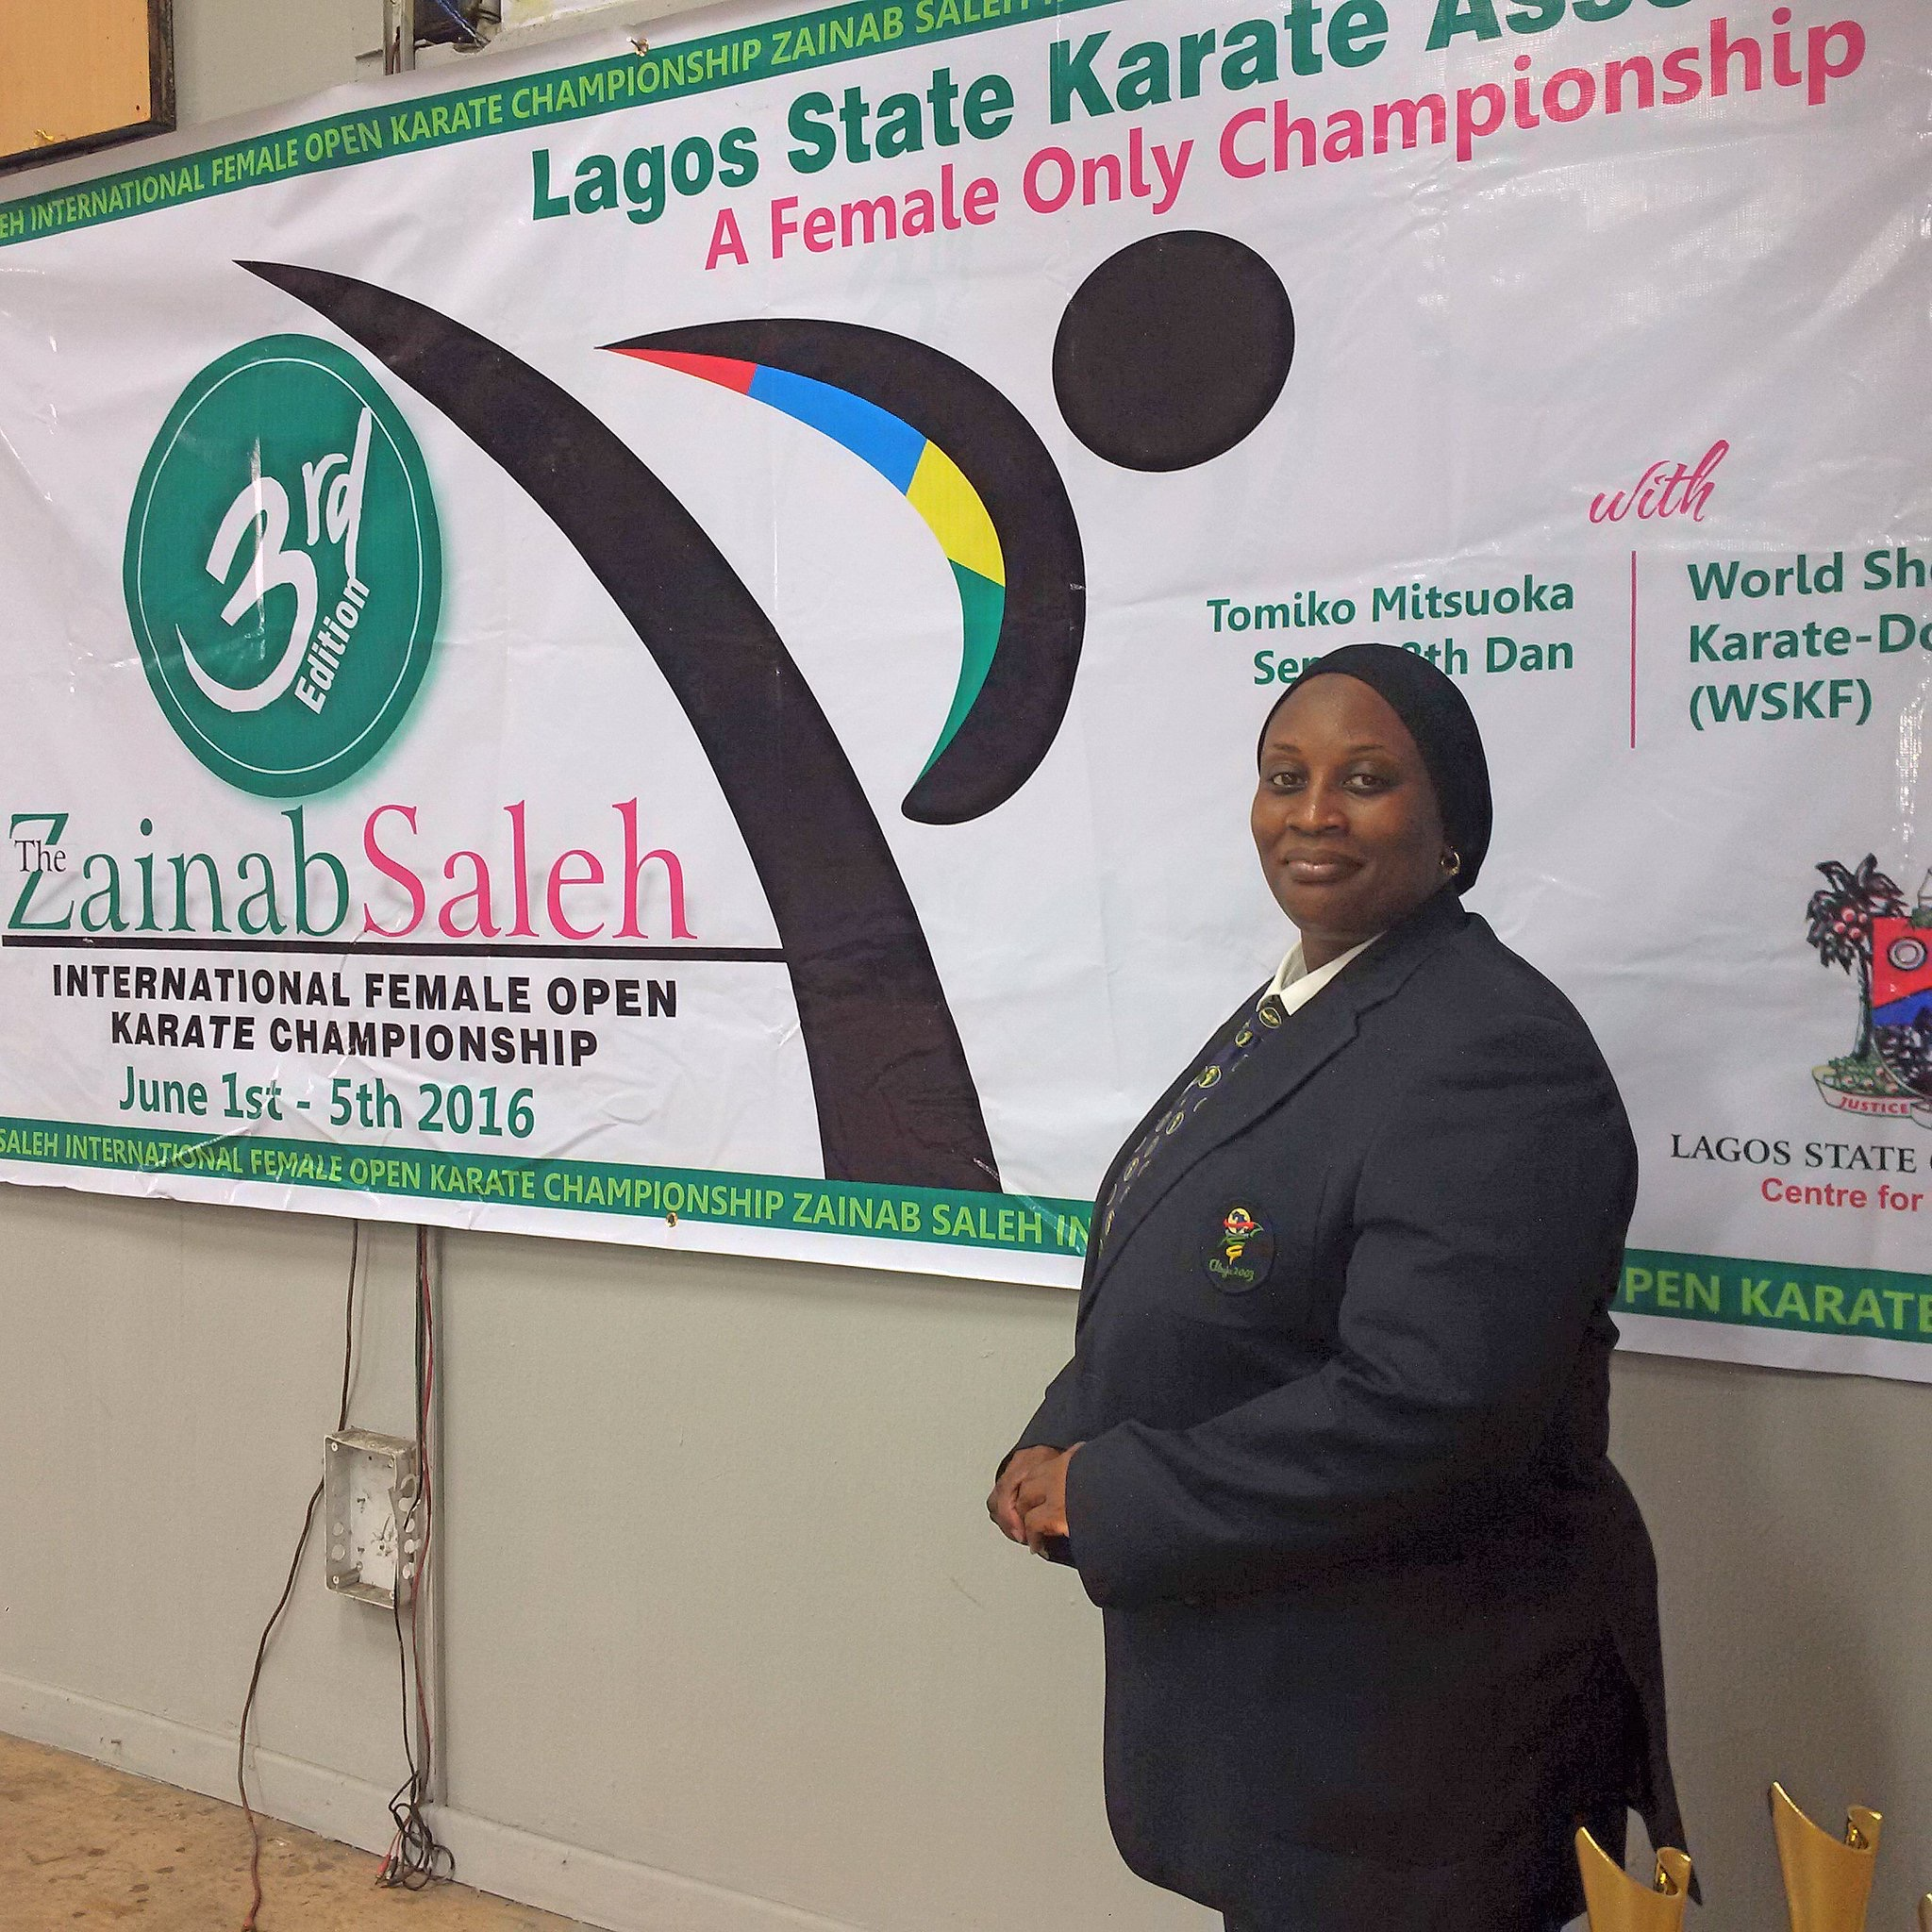 Zainab Saleh Int'l Female Open Karate Championship Ends In Style